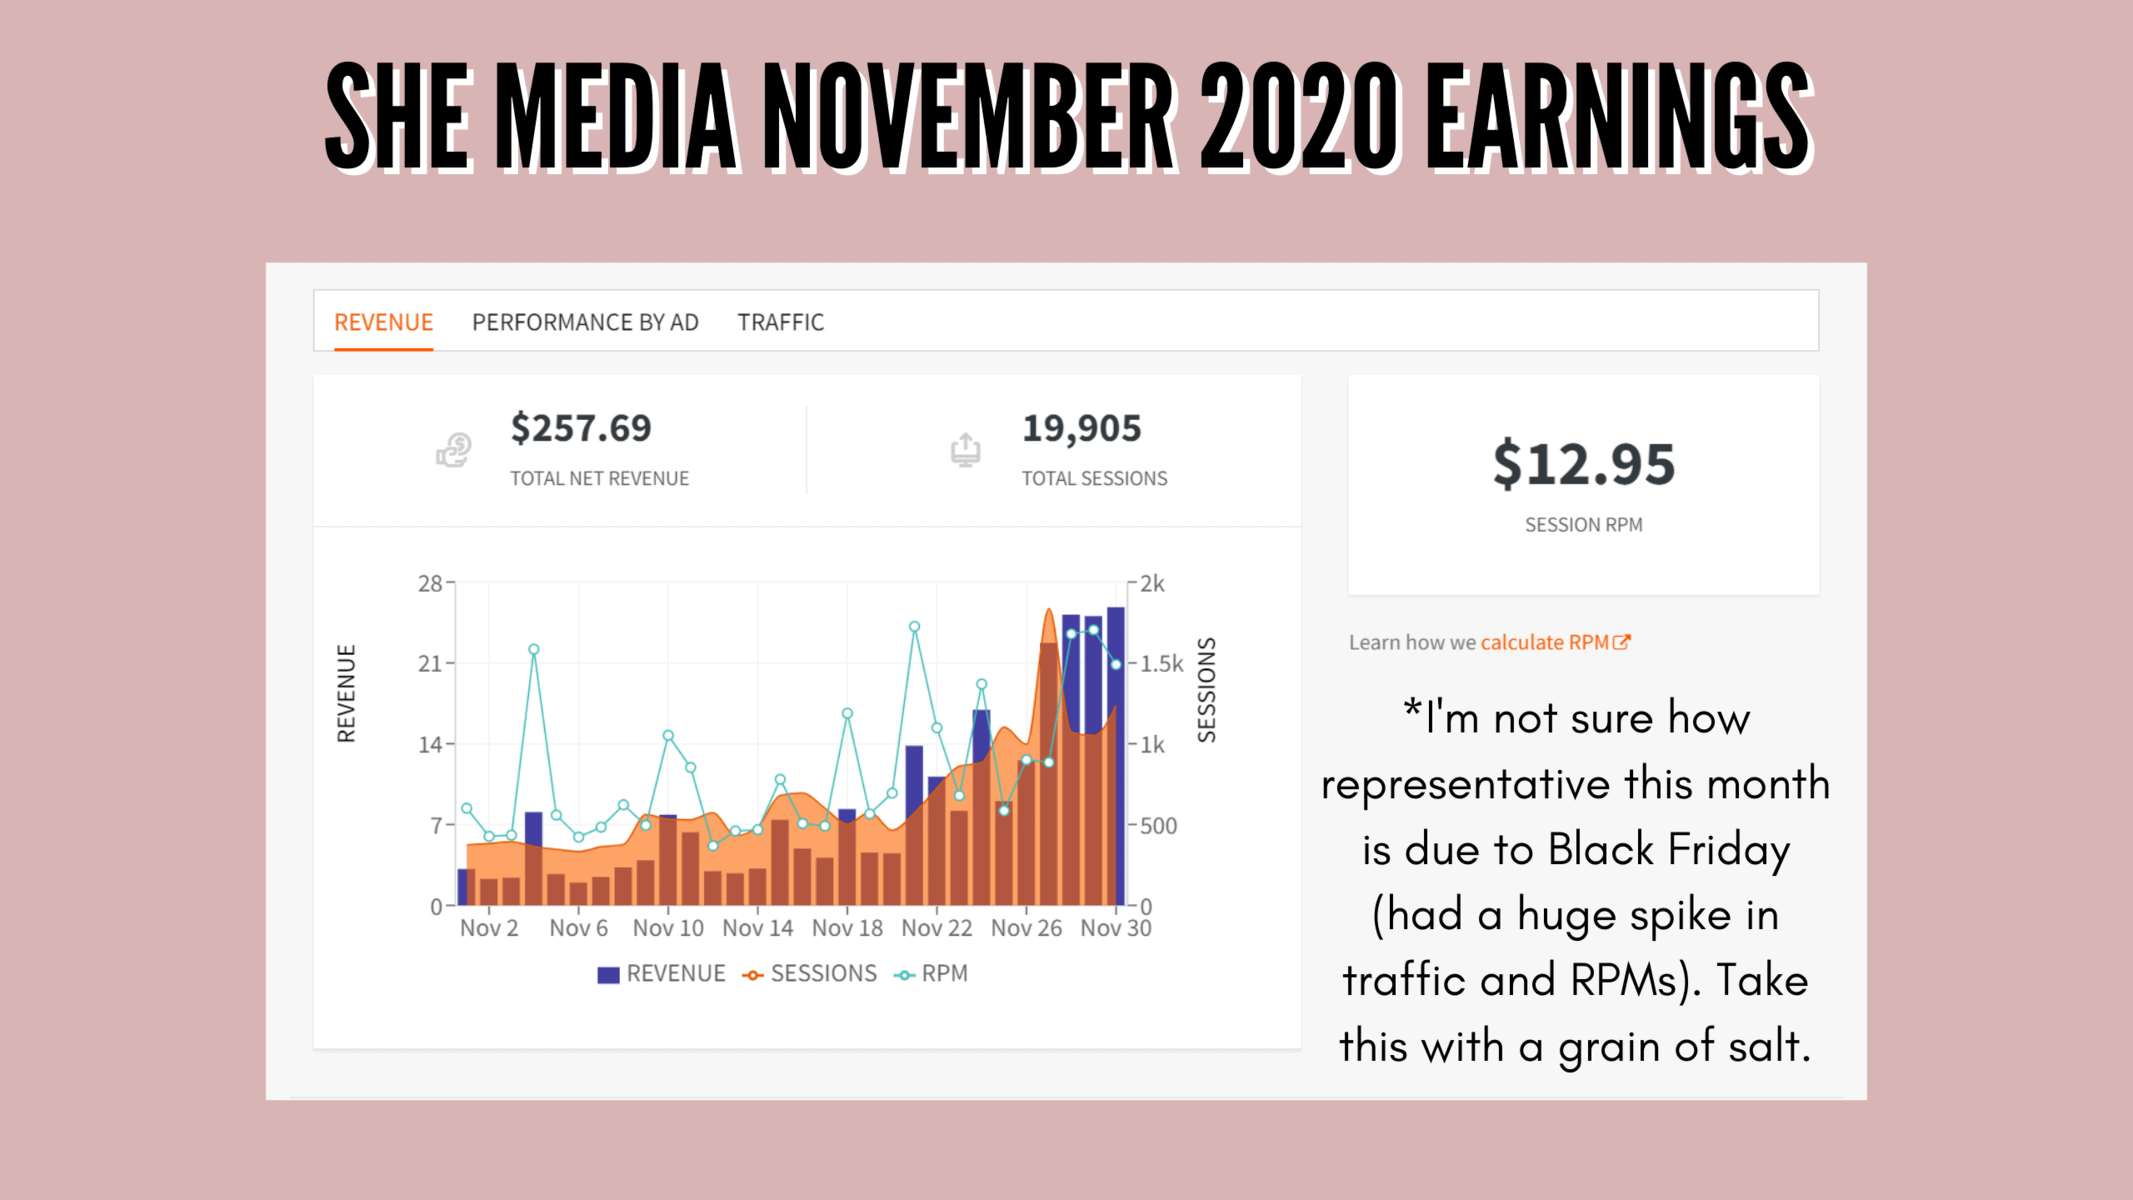 My November 2020 earnings with SHE Media - $258 with 19.9k sessions for an RPM of $12.95